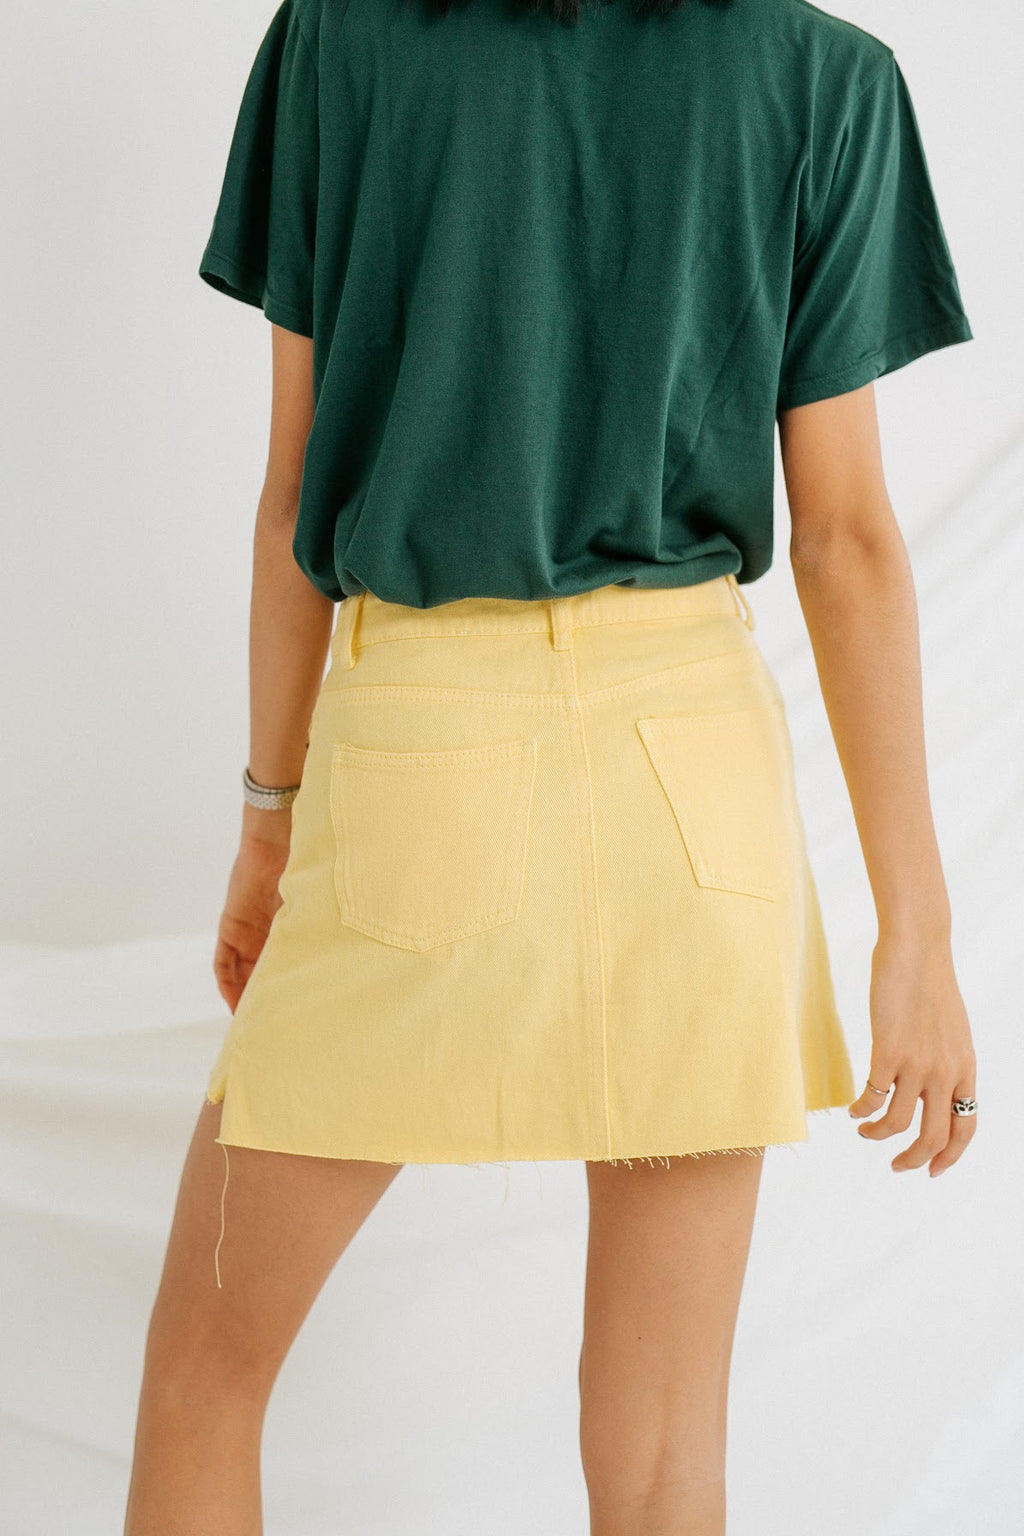 Sunny Daze Mini Skirt